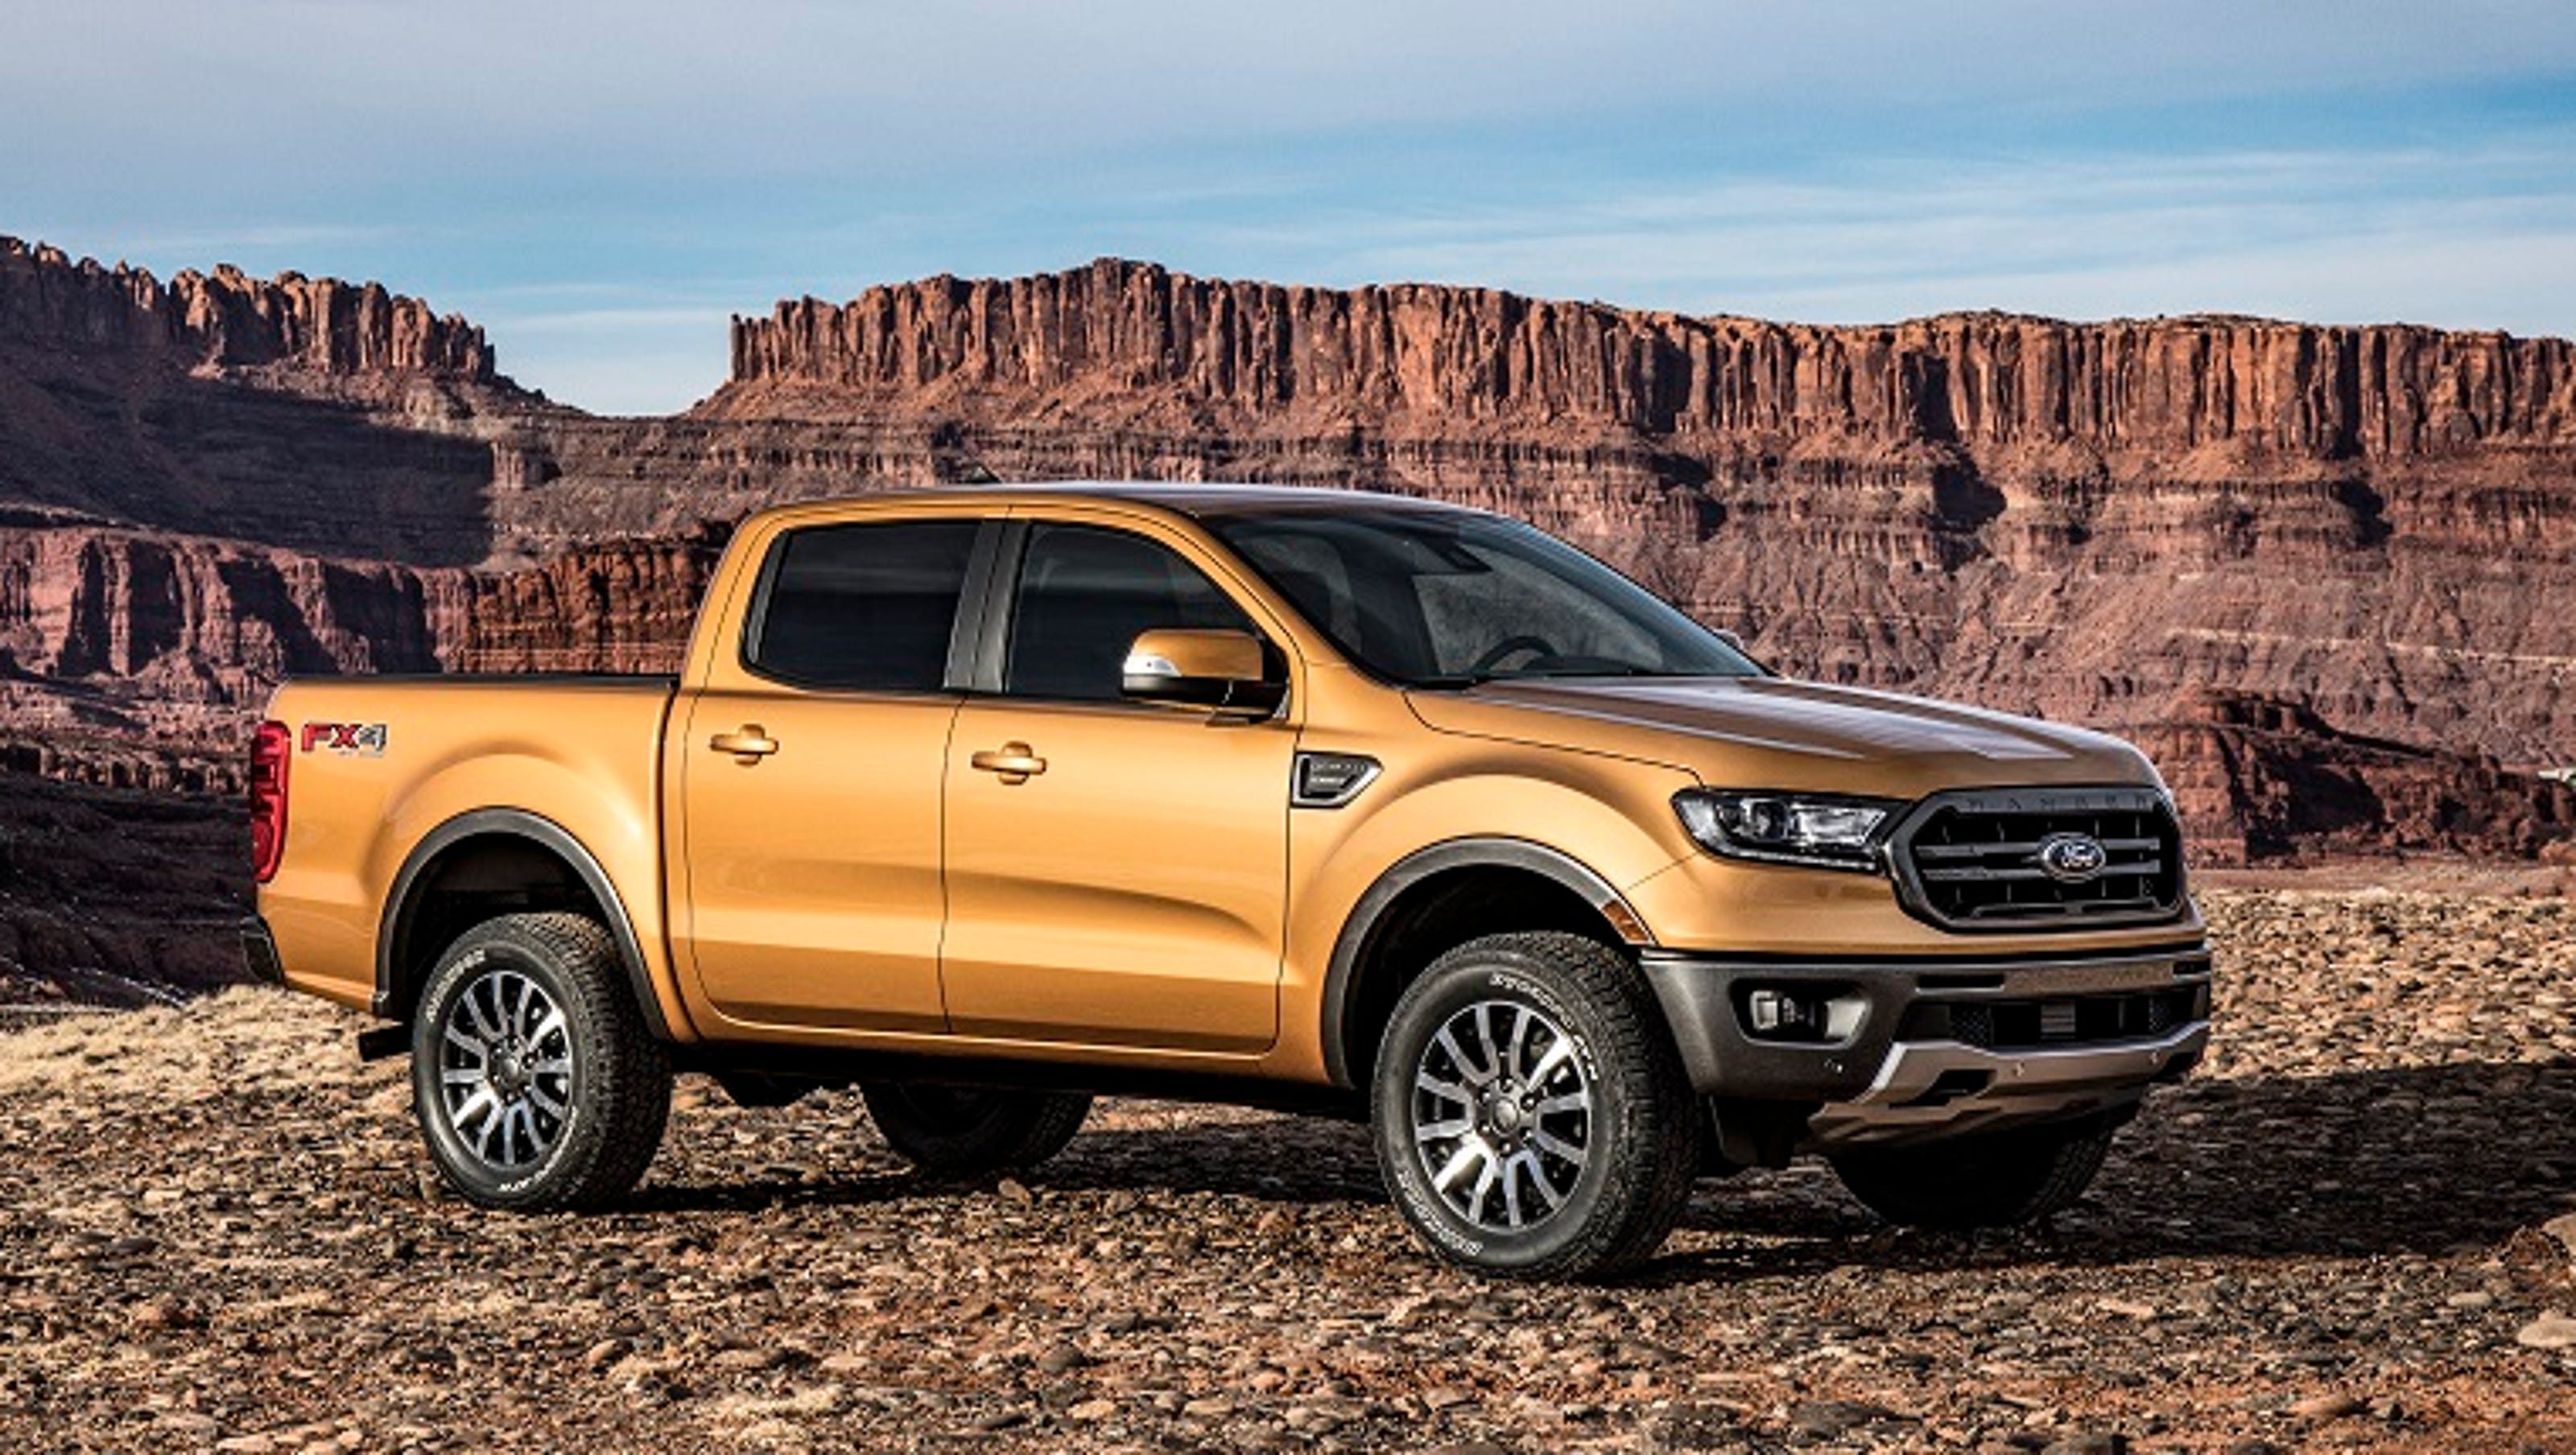 Ford Shows New Ranger Midsize Pickup Ahead Of Detroit Auto